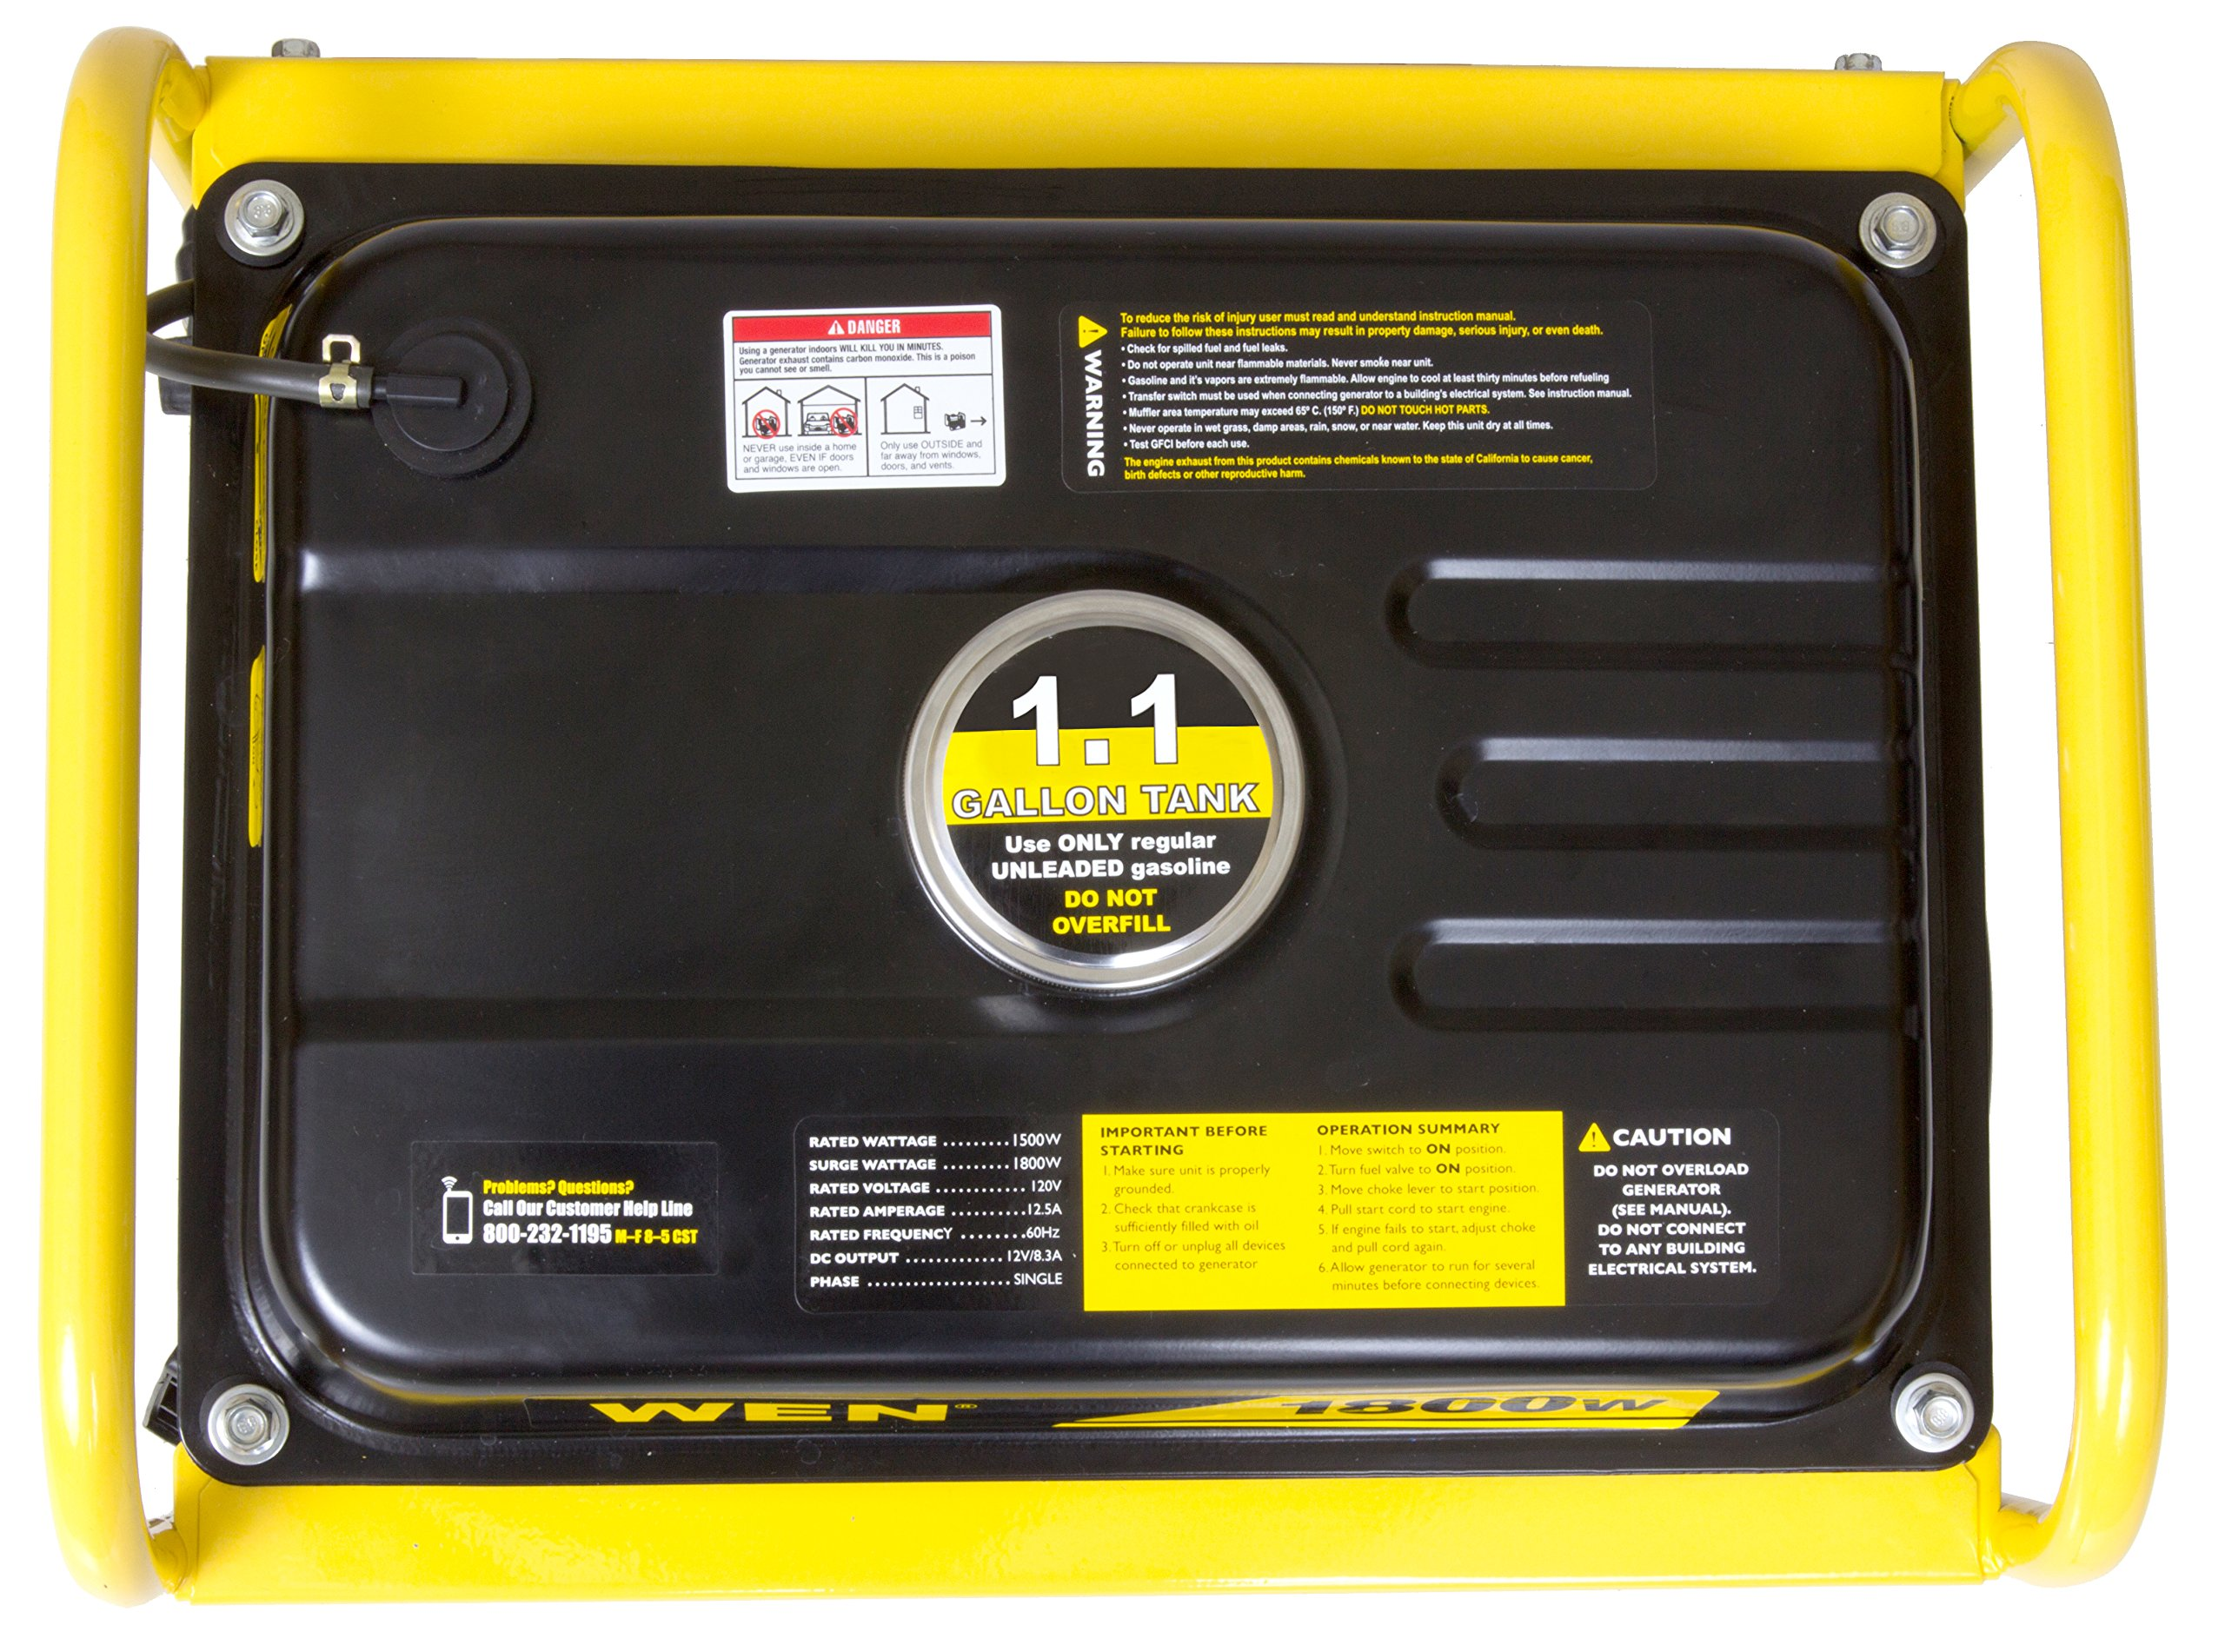 WEN 56180, 1500 Running Watts/1800 Starting Watts, Gas Powered Portable Generator, CARB Compliant by WEN (Image #5)